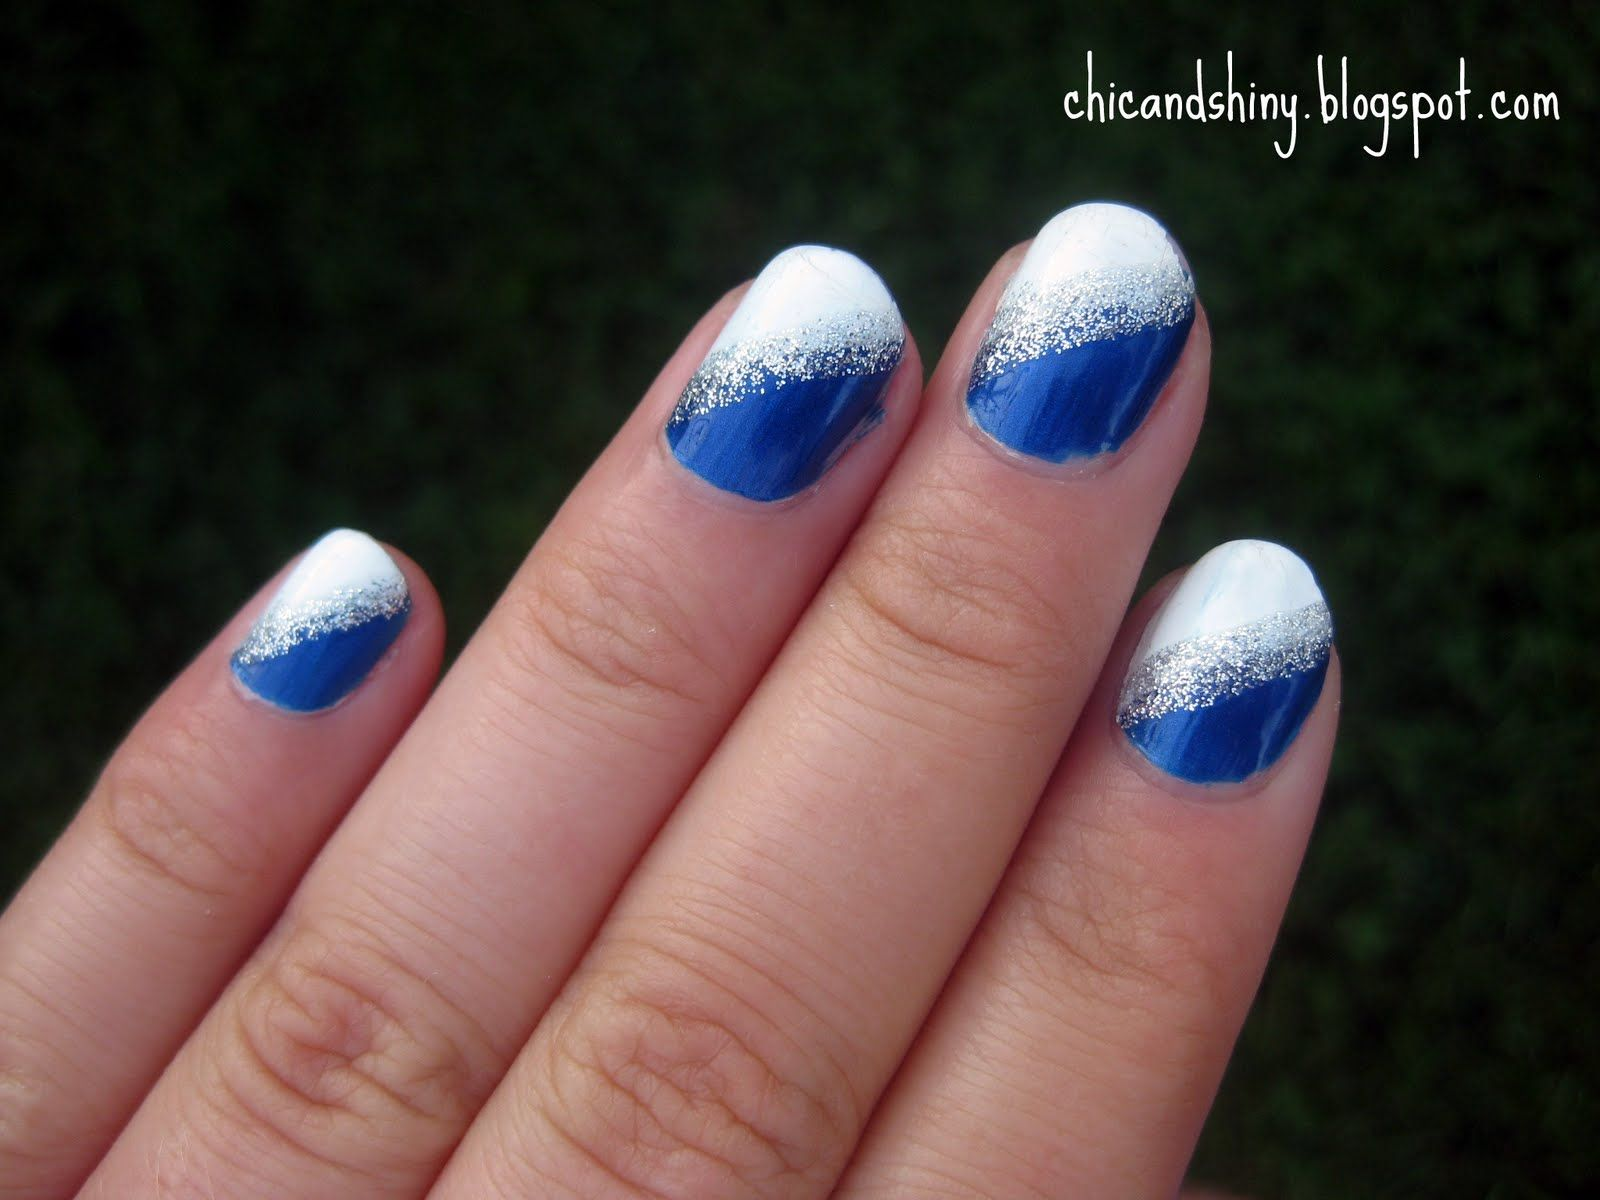 Nail art: Blue and white nail art design | Nail art | Pinterest ...